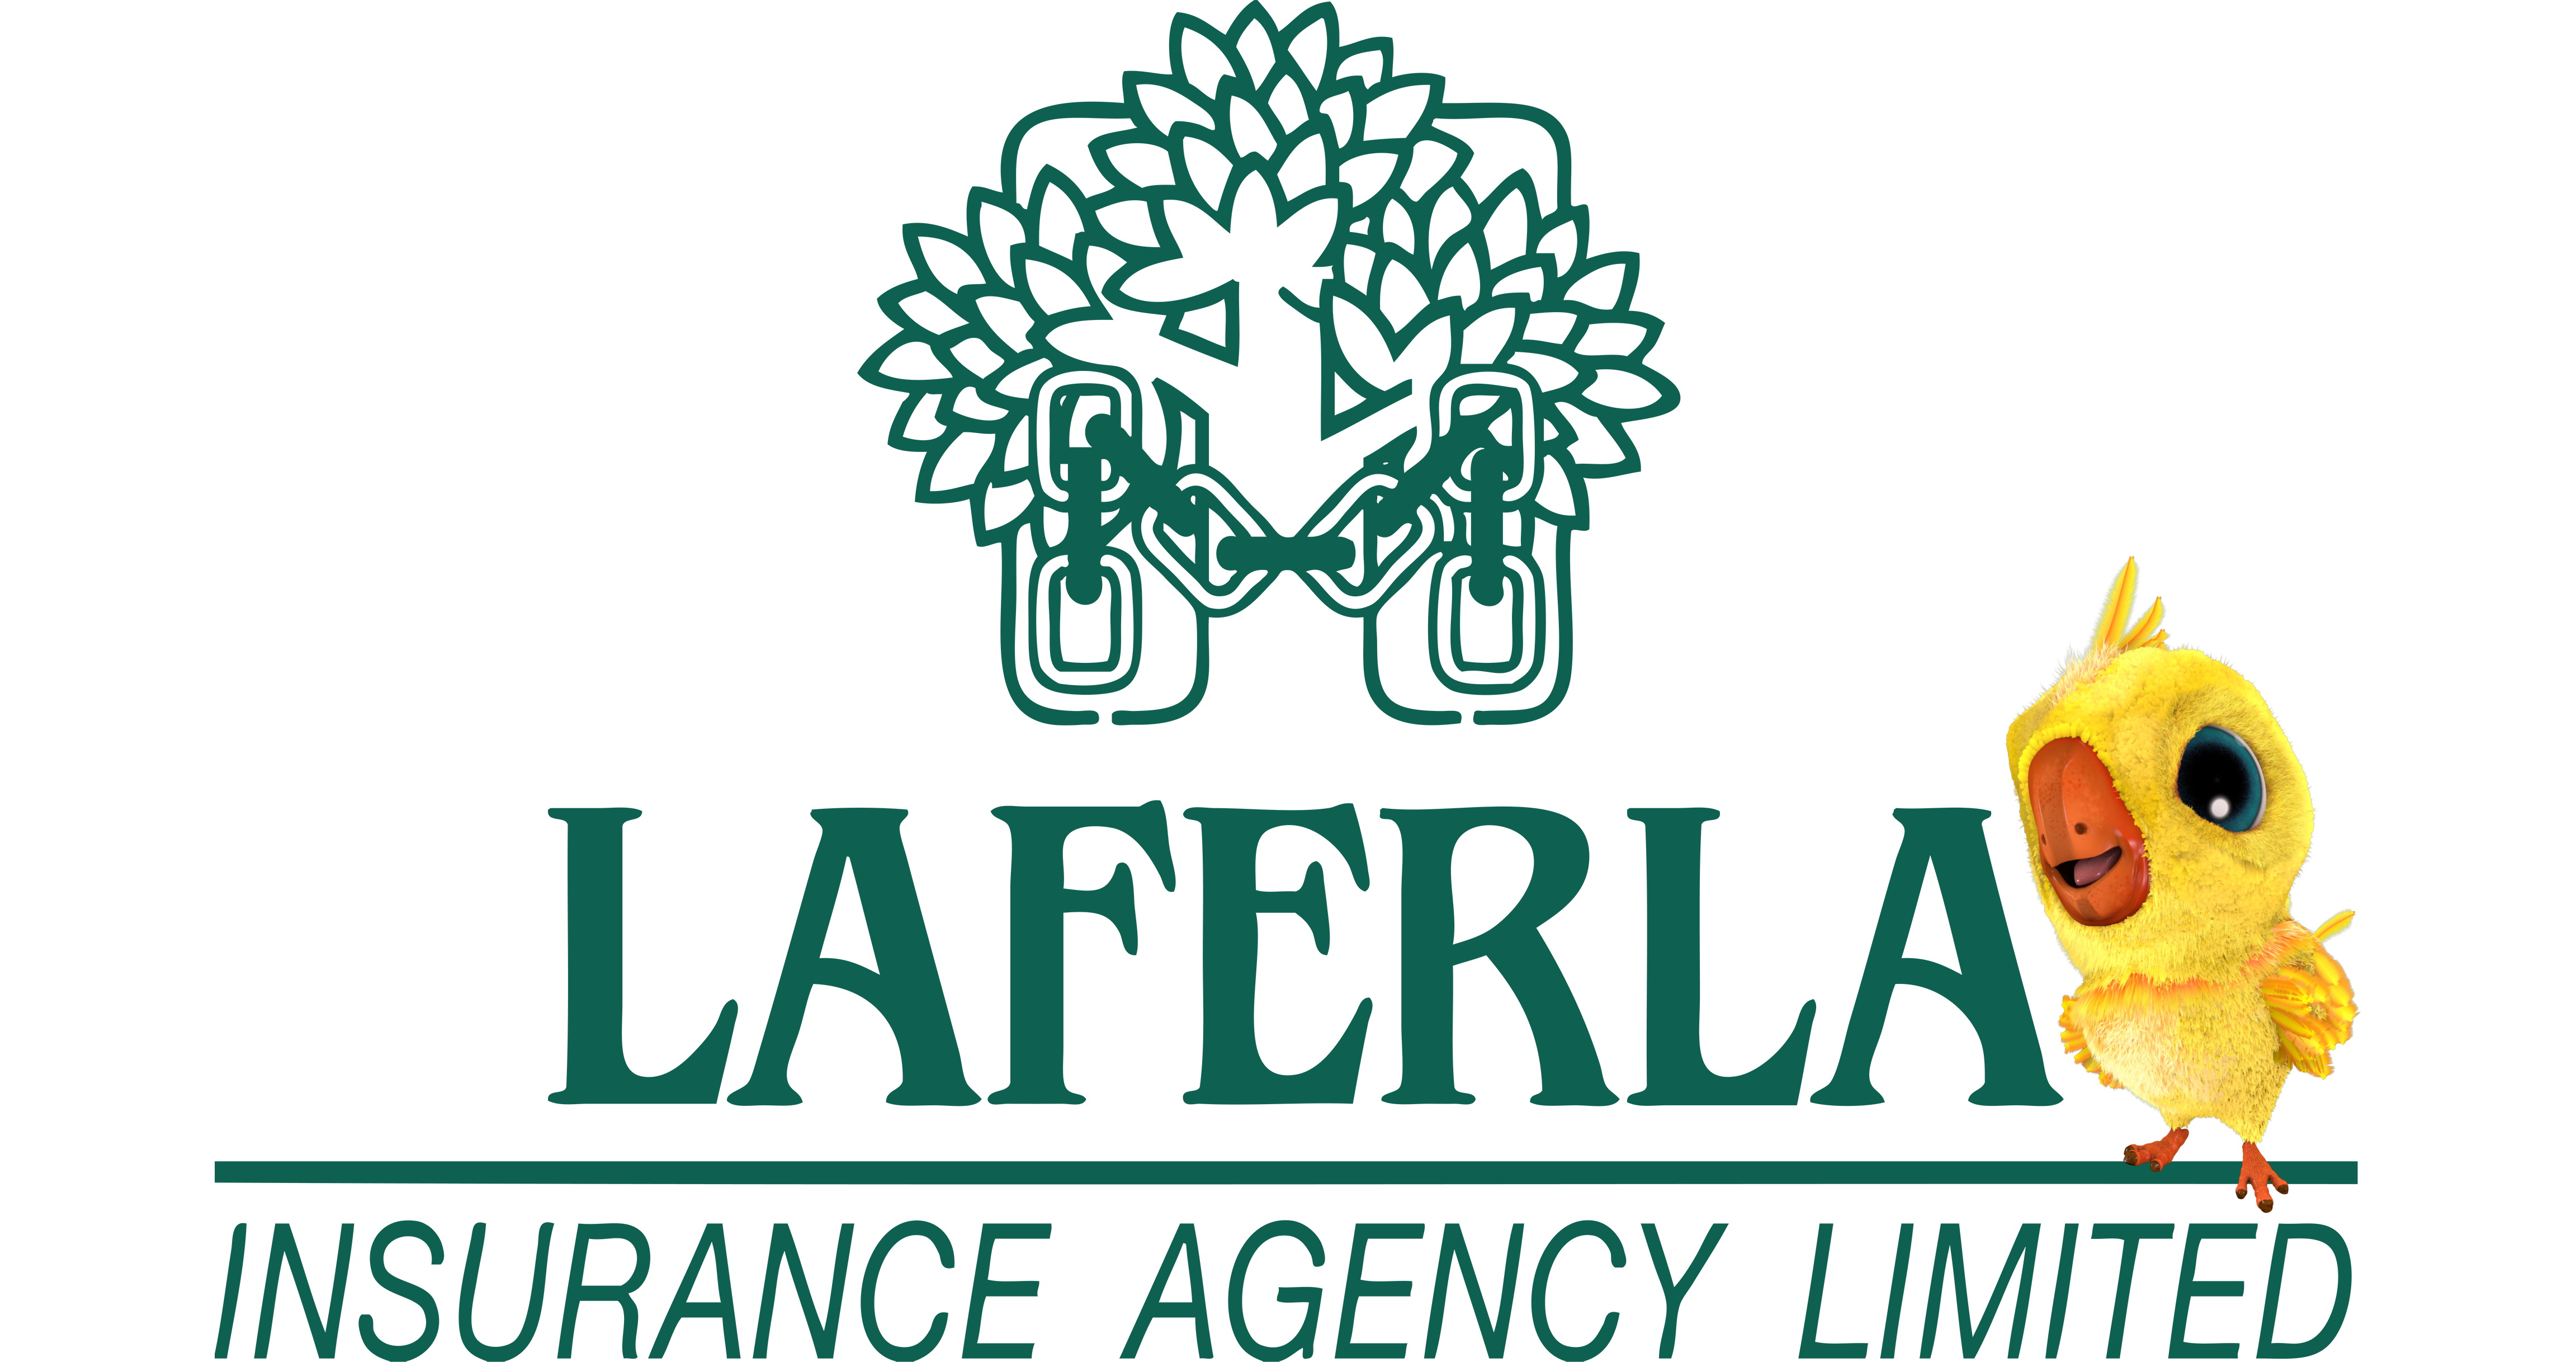 Laferla Insurance Agency Limited